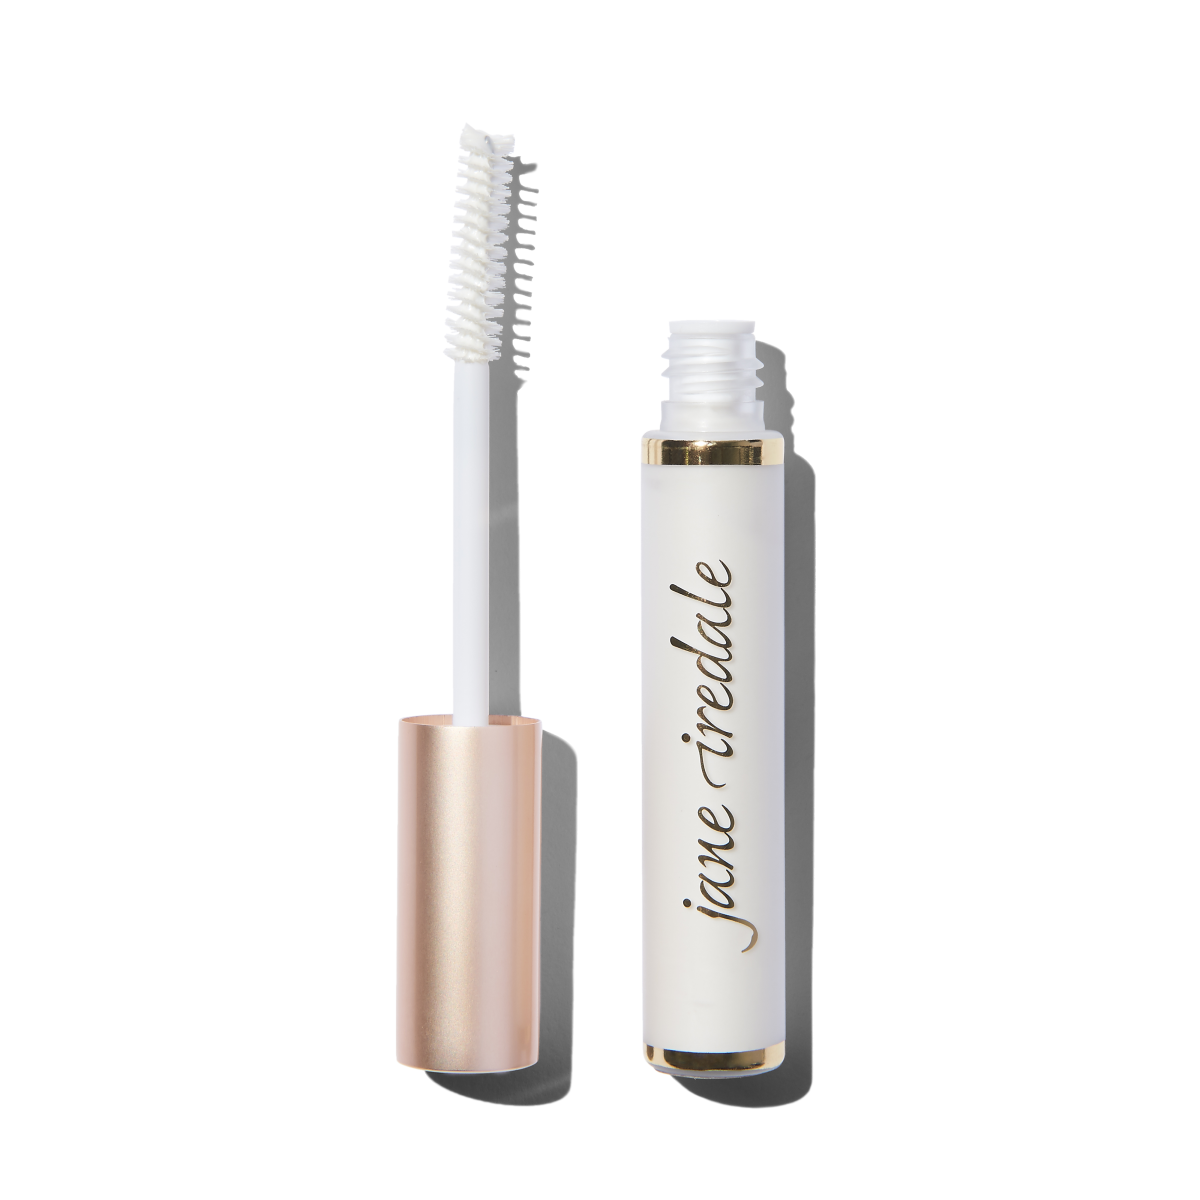 439d733fbb8 PureLash® Extender & Conditioner by Jane Iredale at Follain